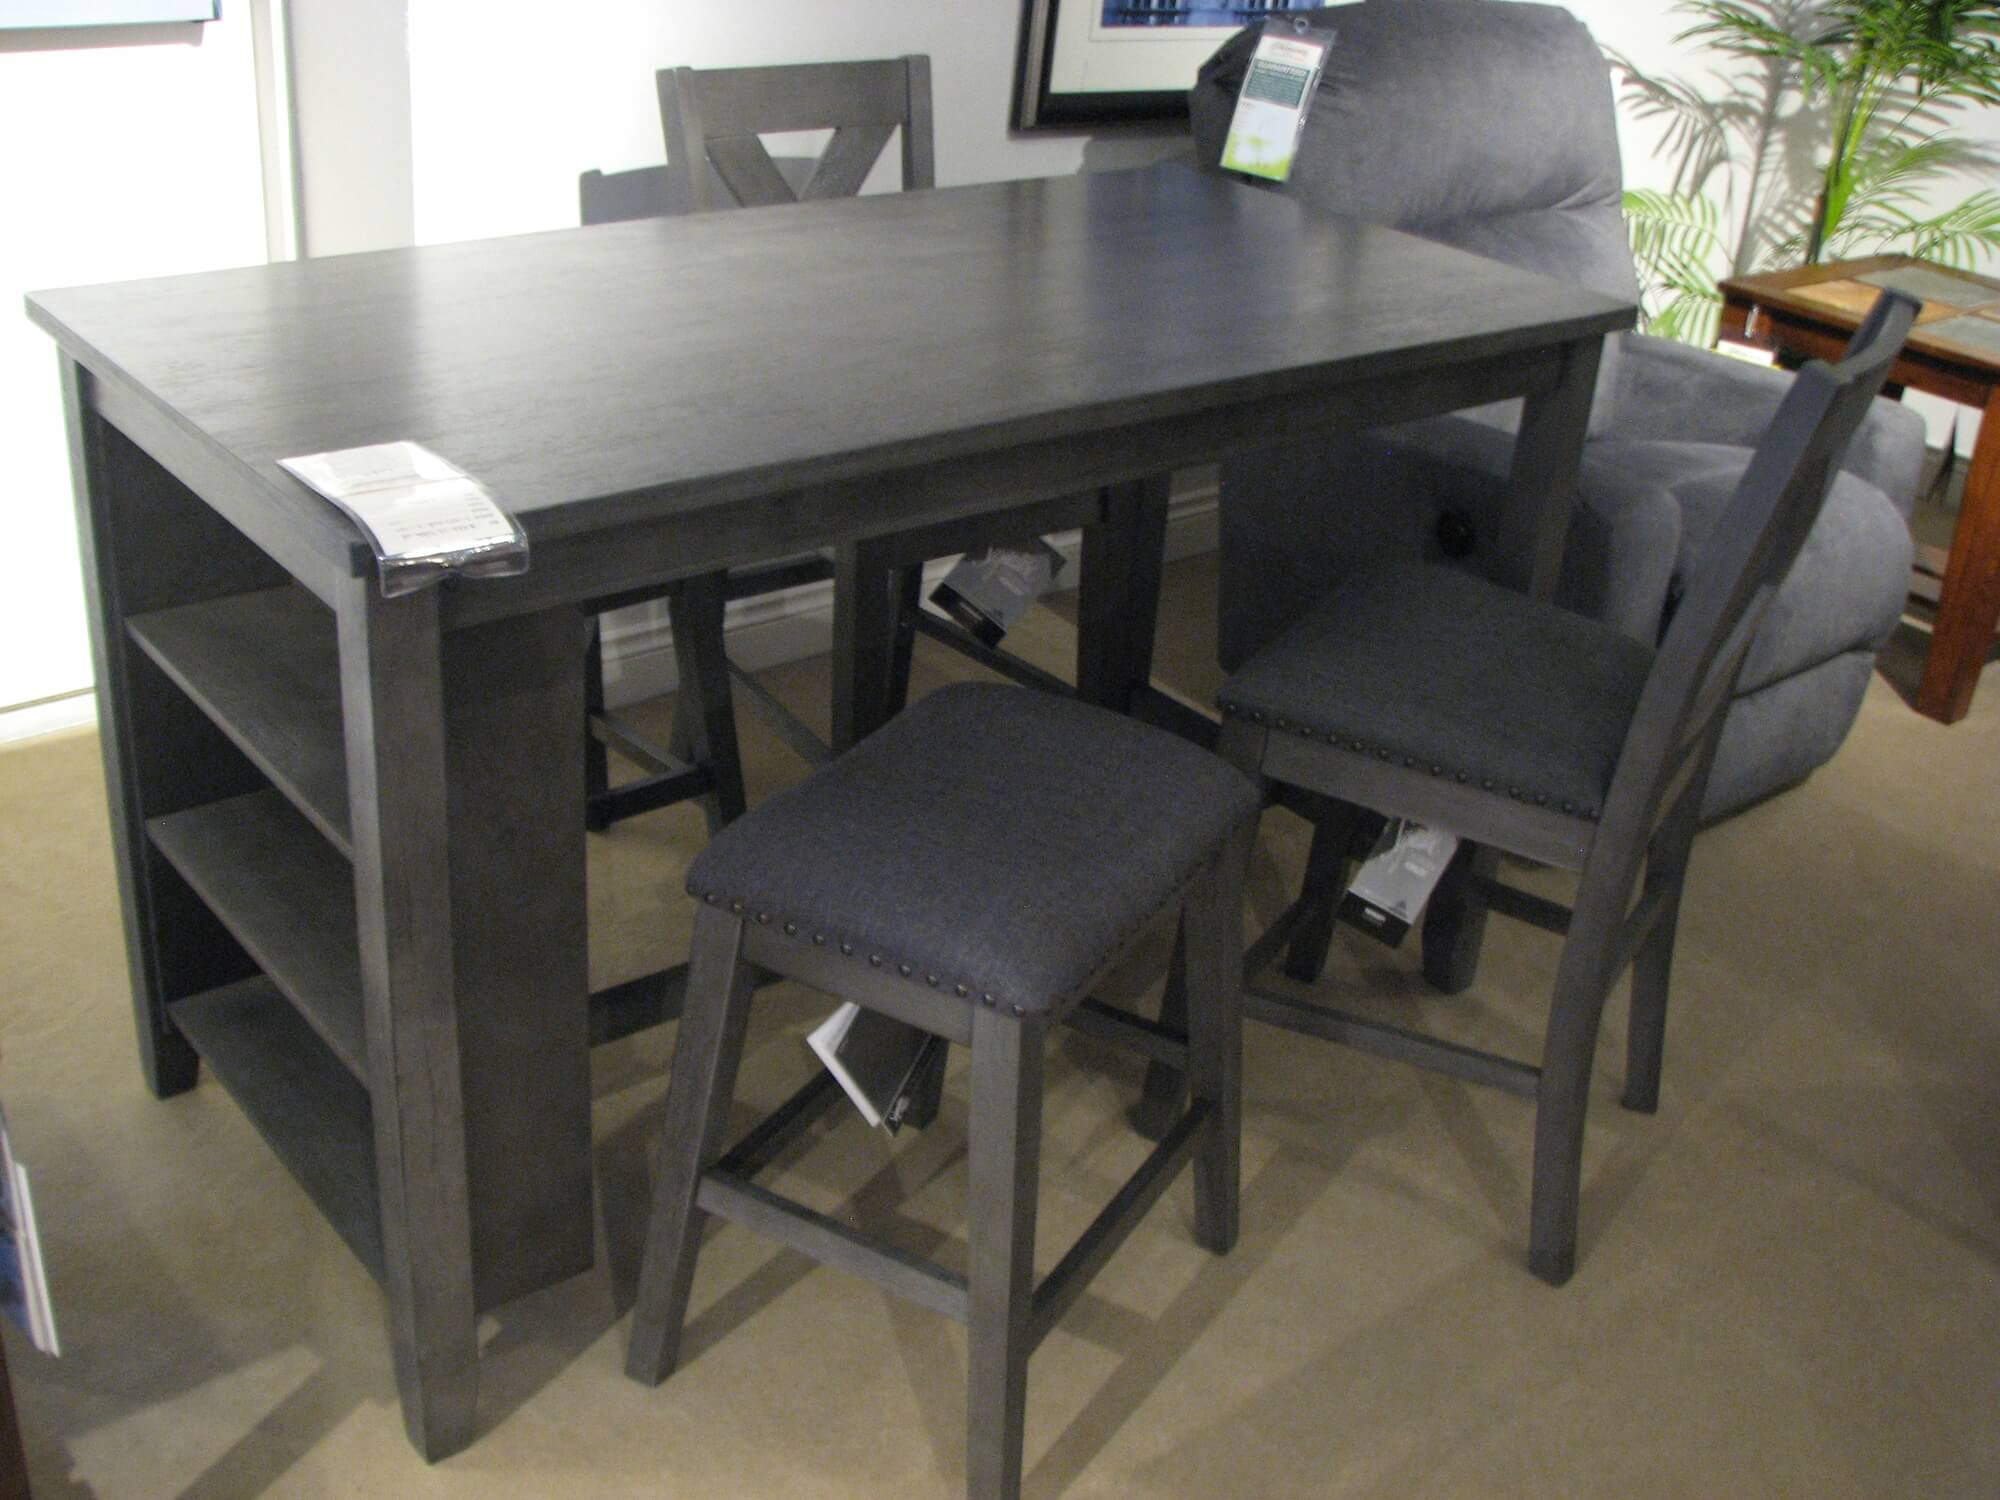 Ashley Pub Dining Table with Three Shelves On One End. Includes Two Stools and Two Chairs